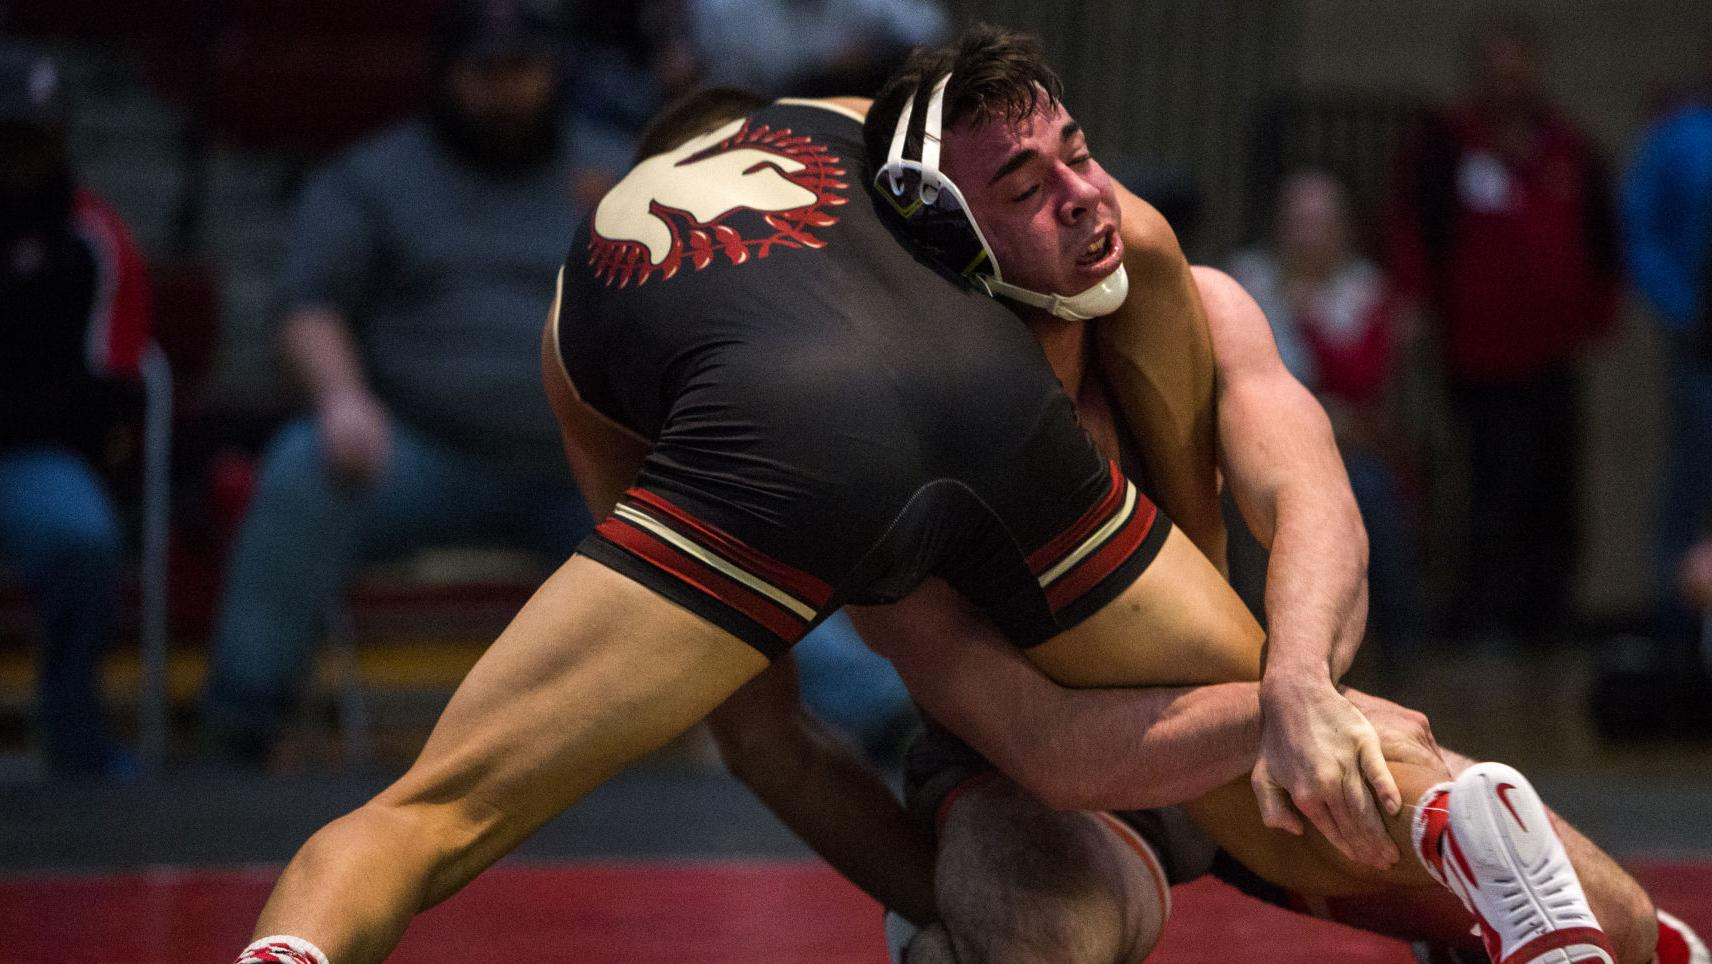 Minico wins Wiley Dobbs Invitational, local wrestlers stay undefeated